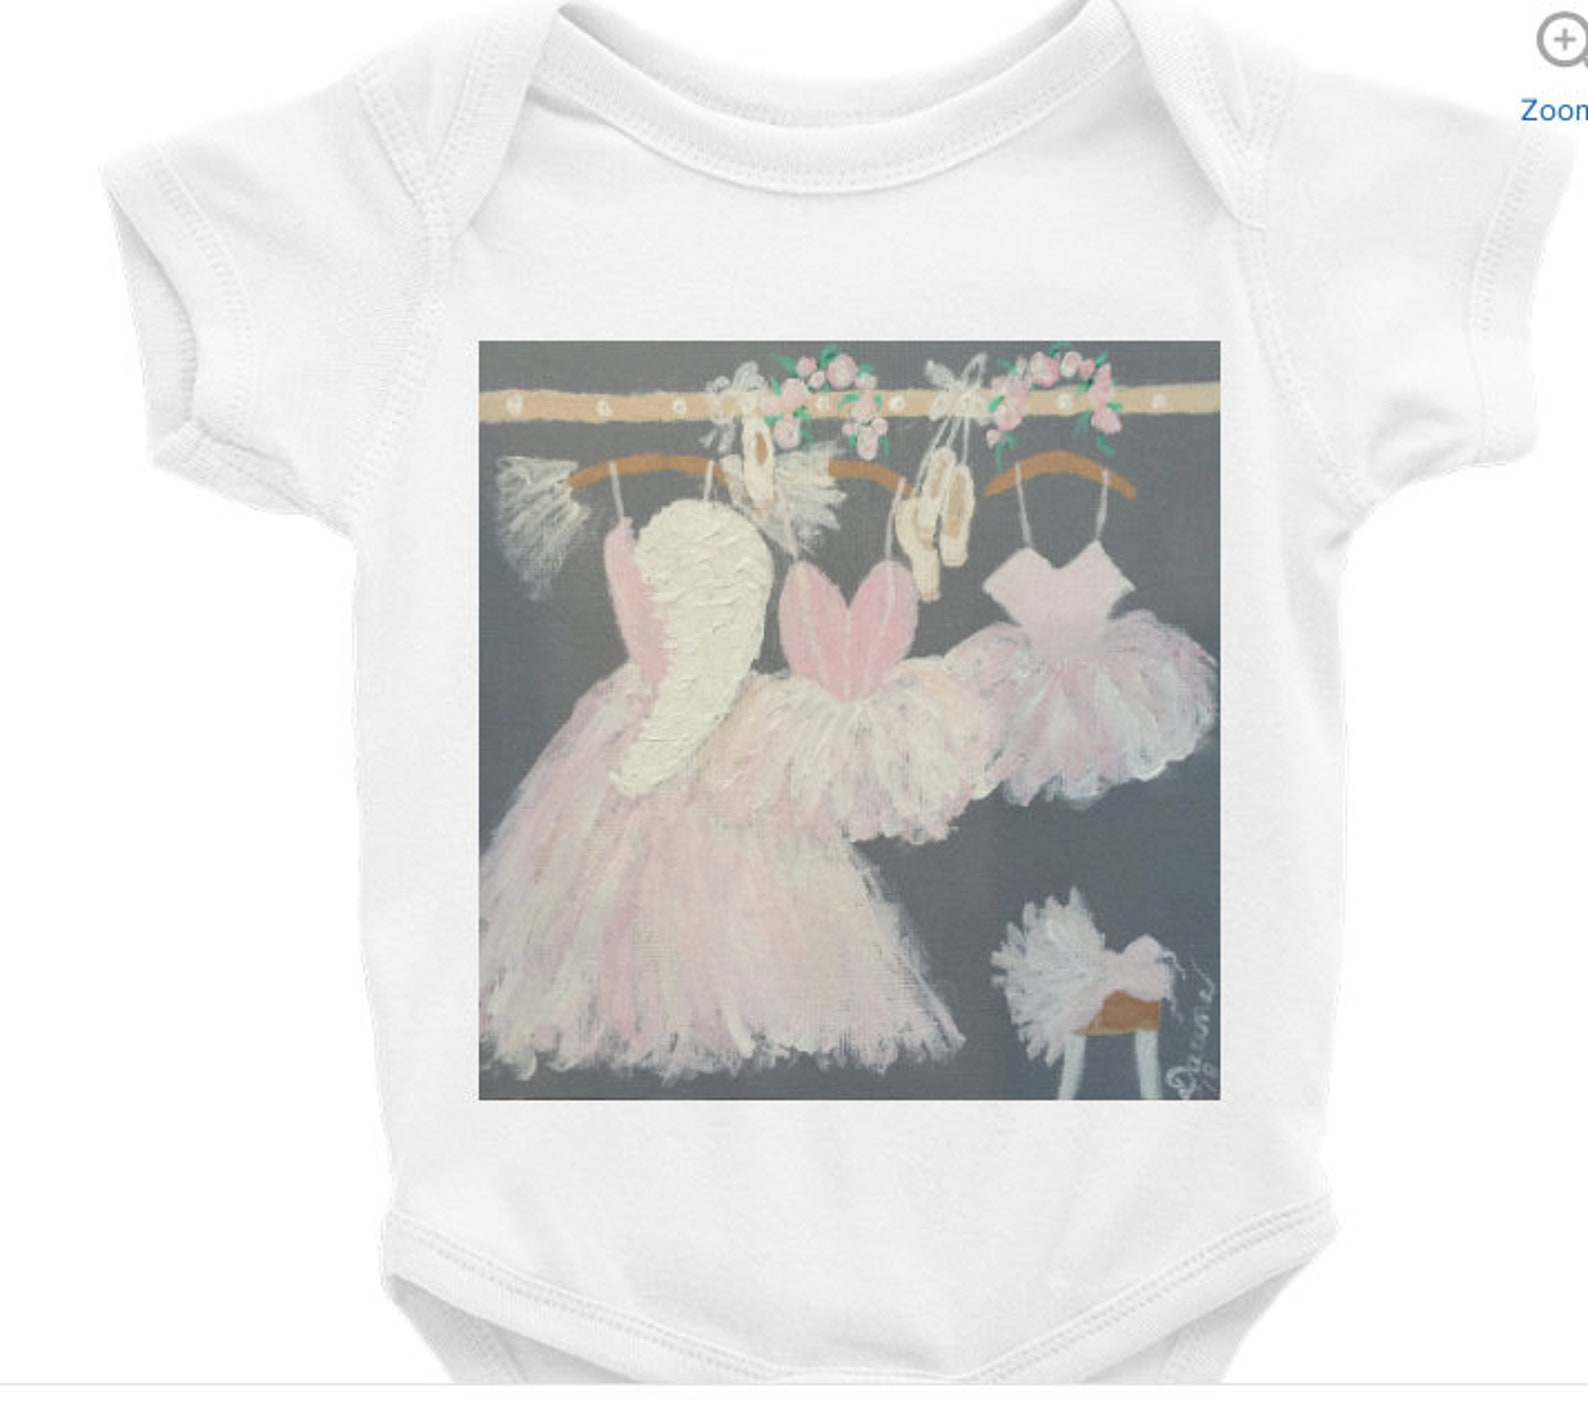 onesie bijou baby so suite ballet barre ballet shoes tutu dress skirt flower crown girl boy flowers pink white bodysuitdesigner